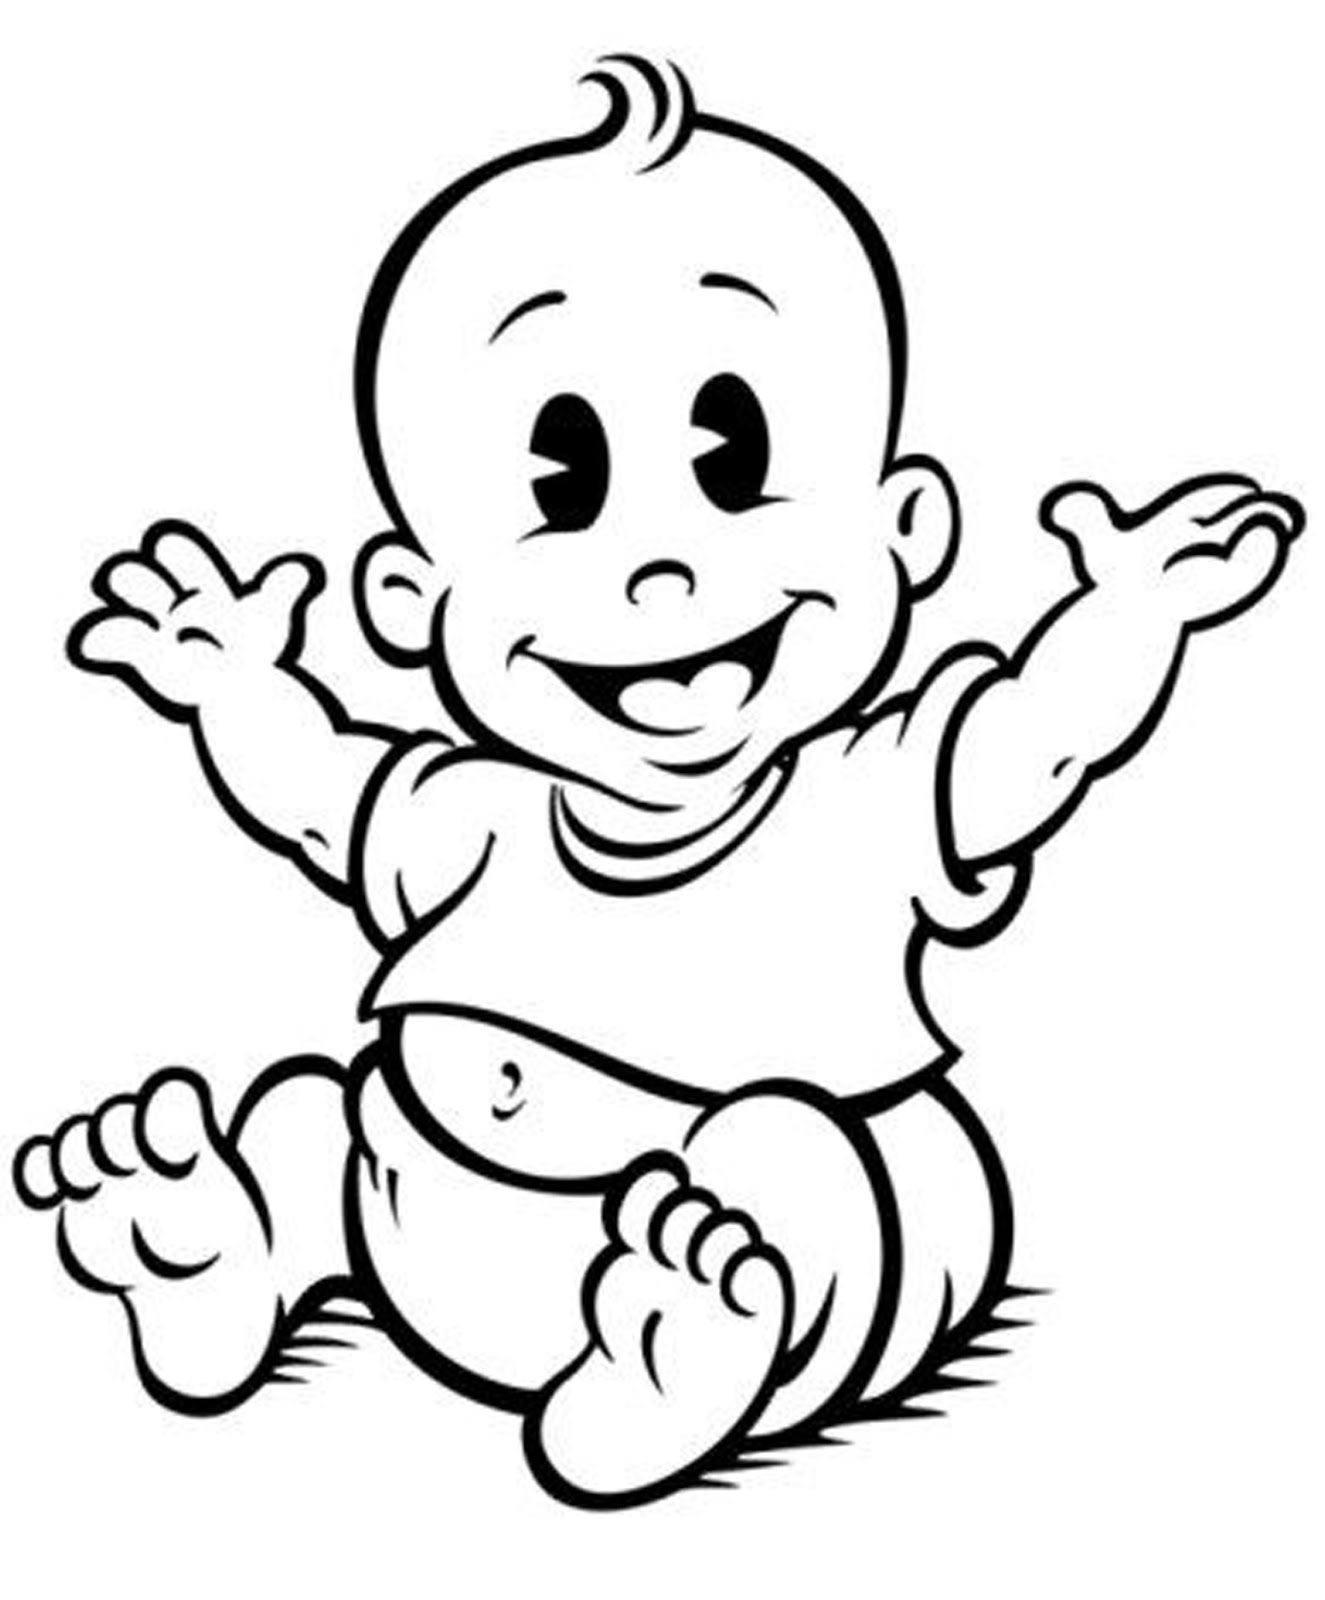 its baby shower clip art.